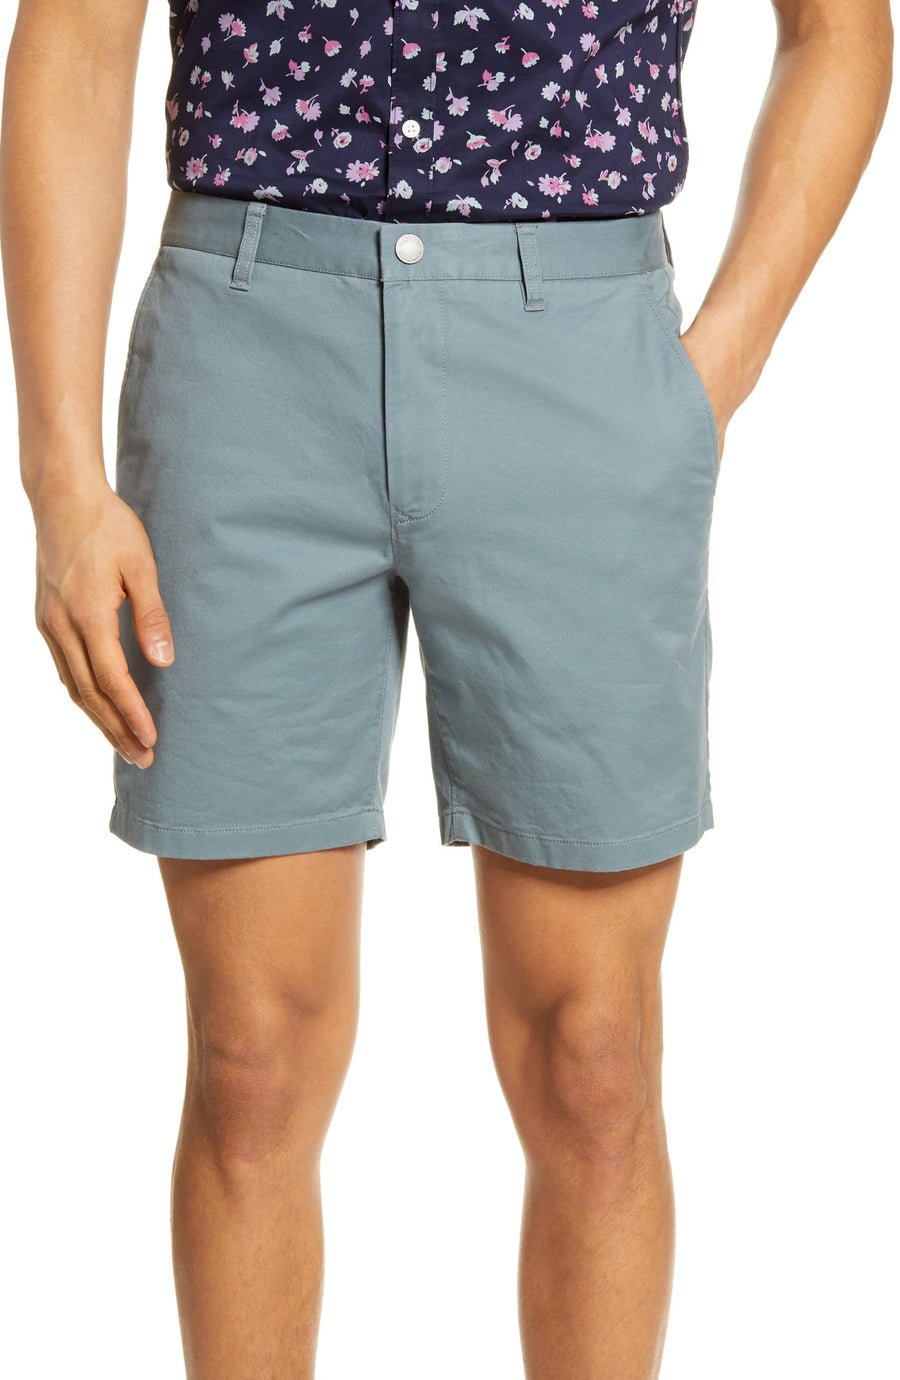 Stretched Washed Chino Shorts 7""